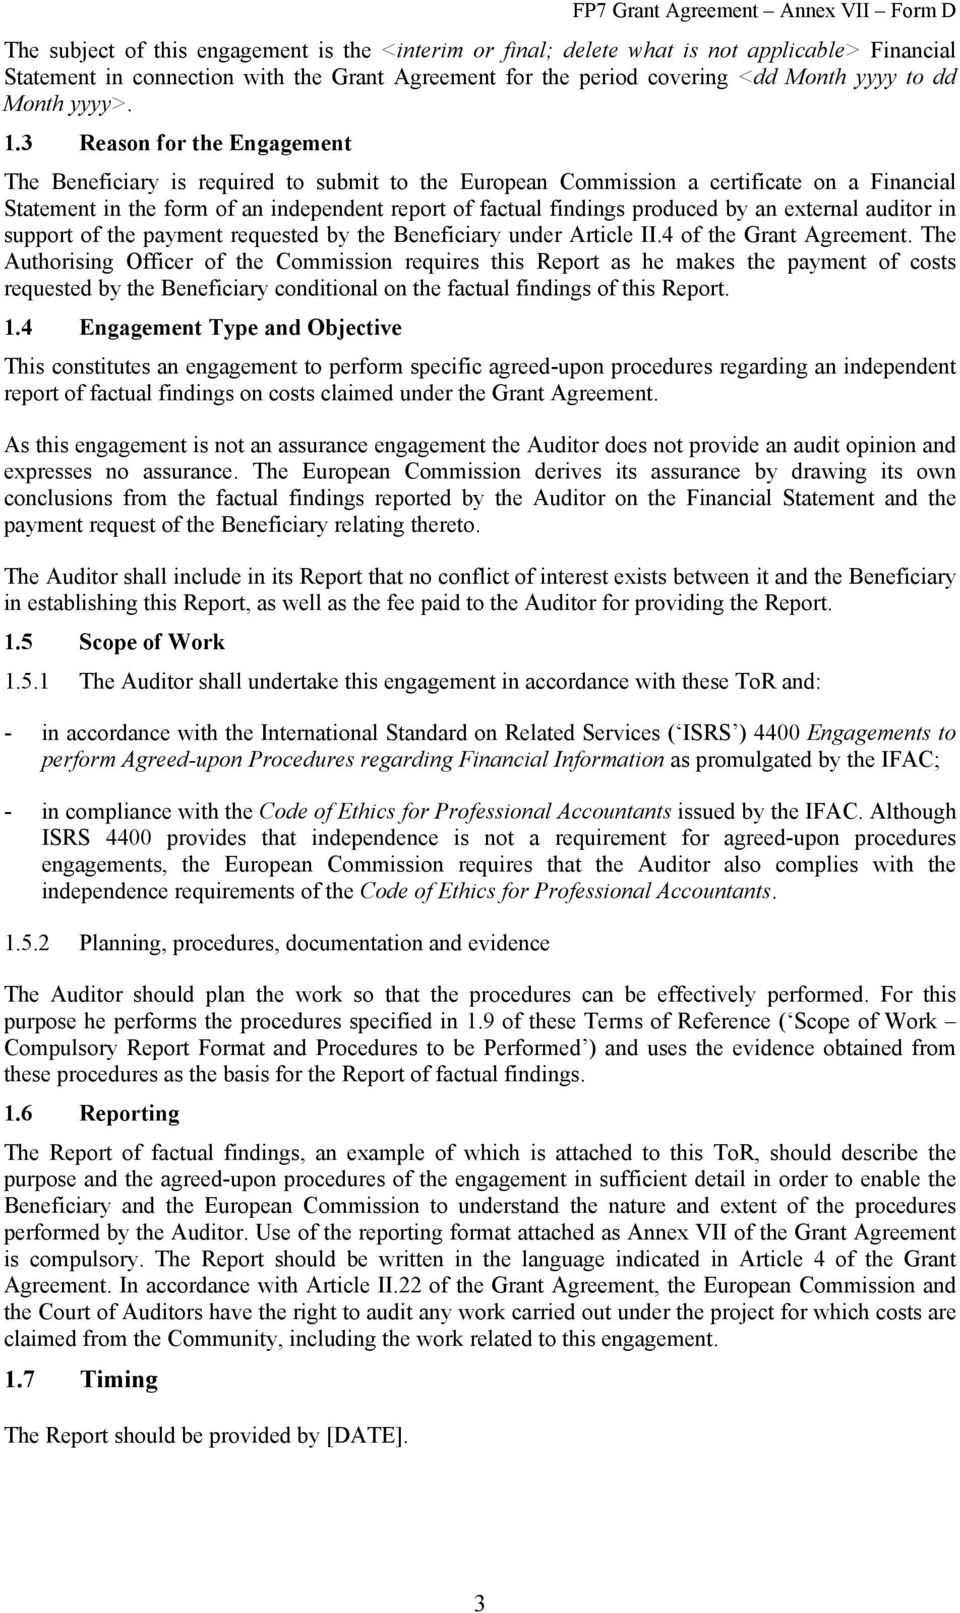 Fp7 Grant Agreement Annex Vii Form D Terms Of Reference For The